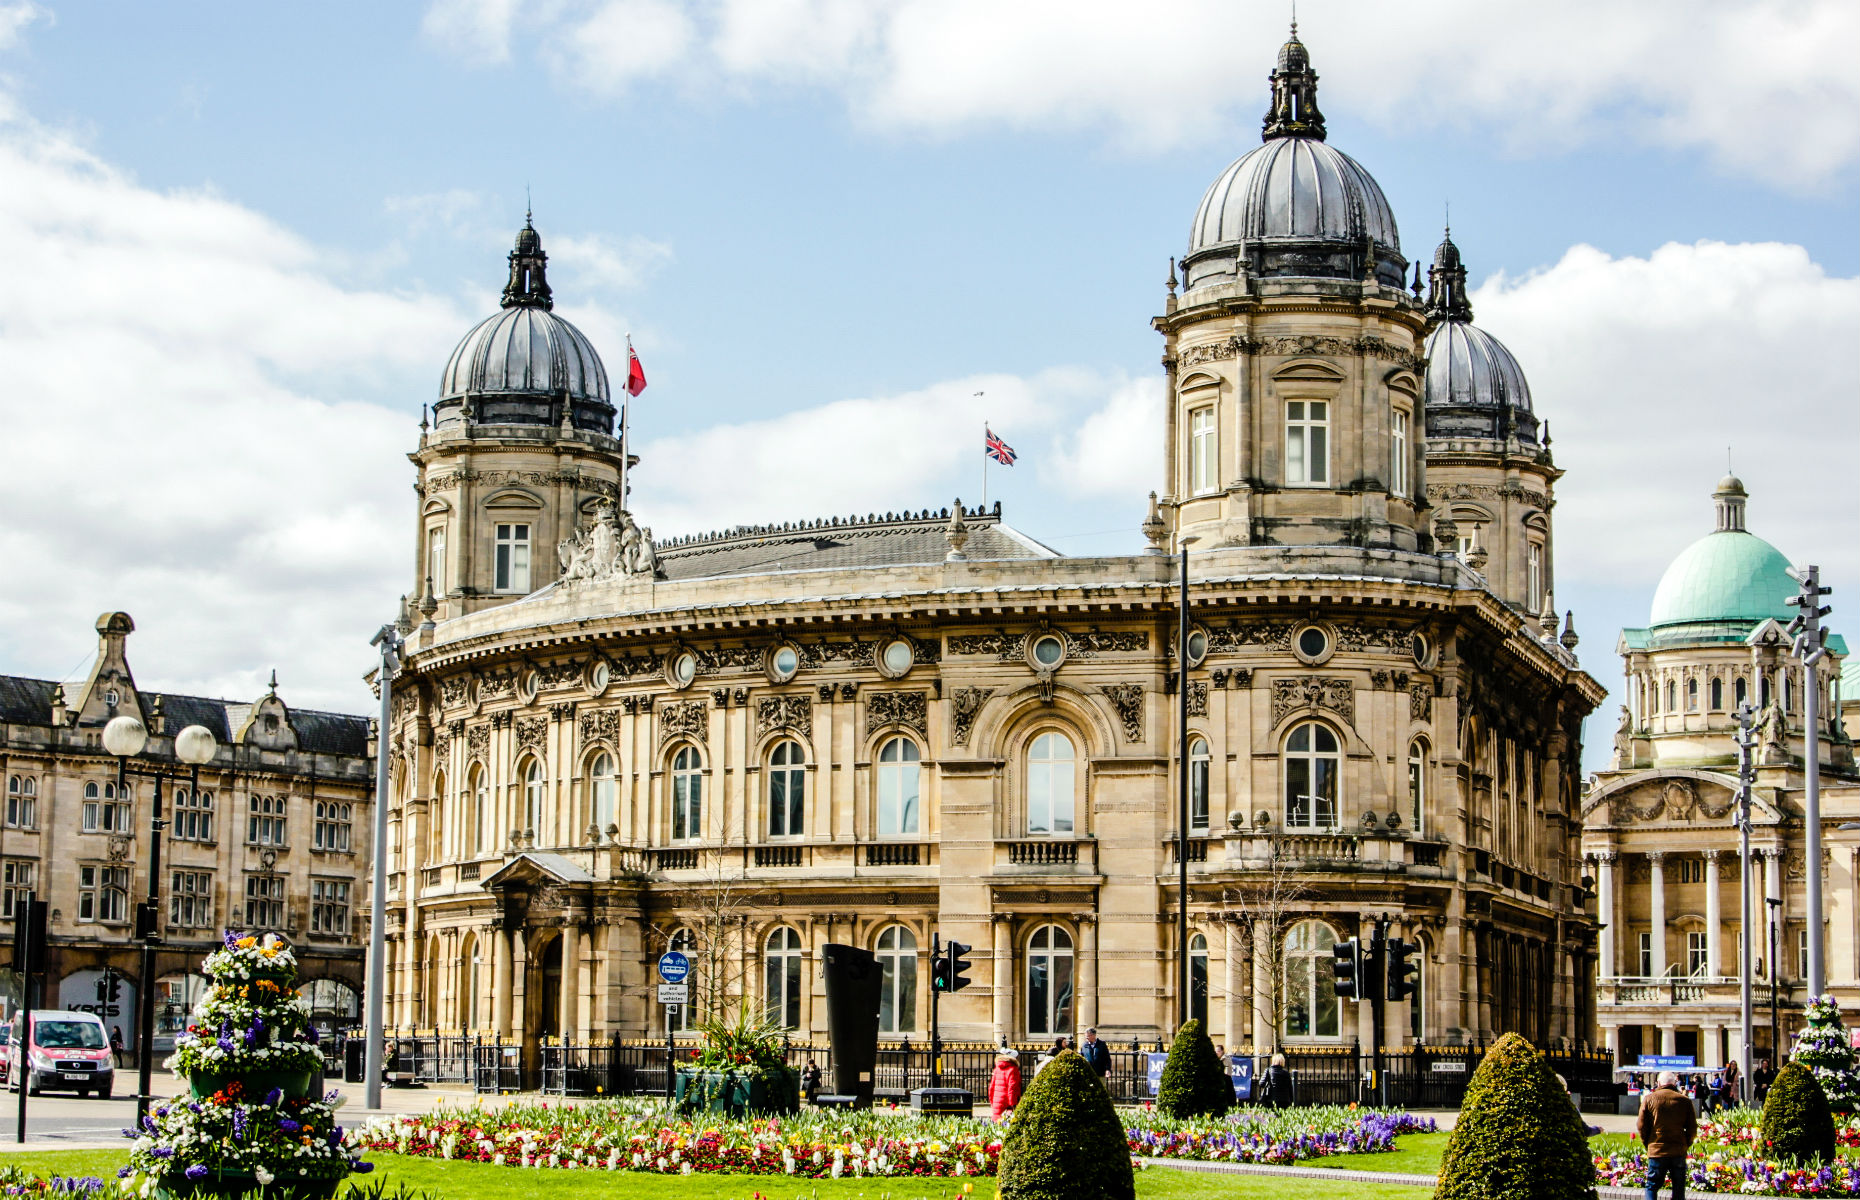 Hull town centre and Maritime Museum (Image: Zhanna Briede/Shutterstock)